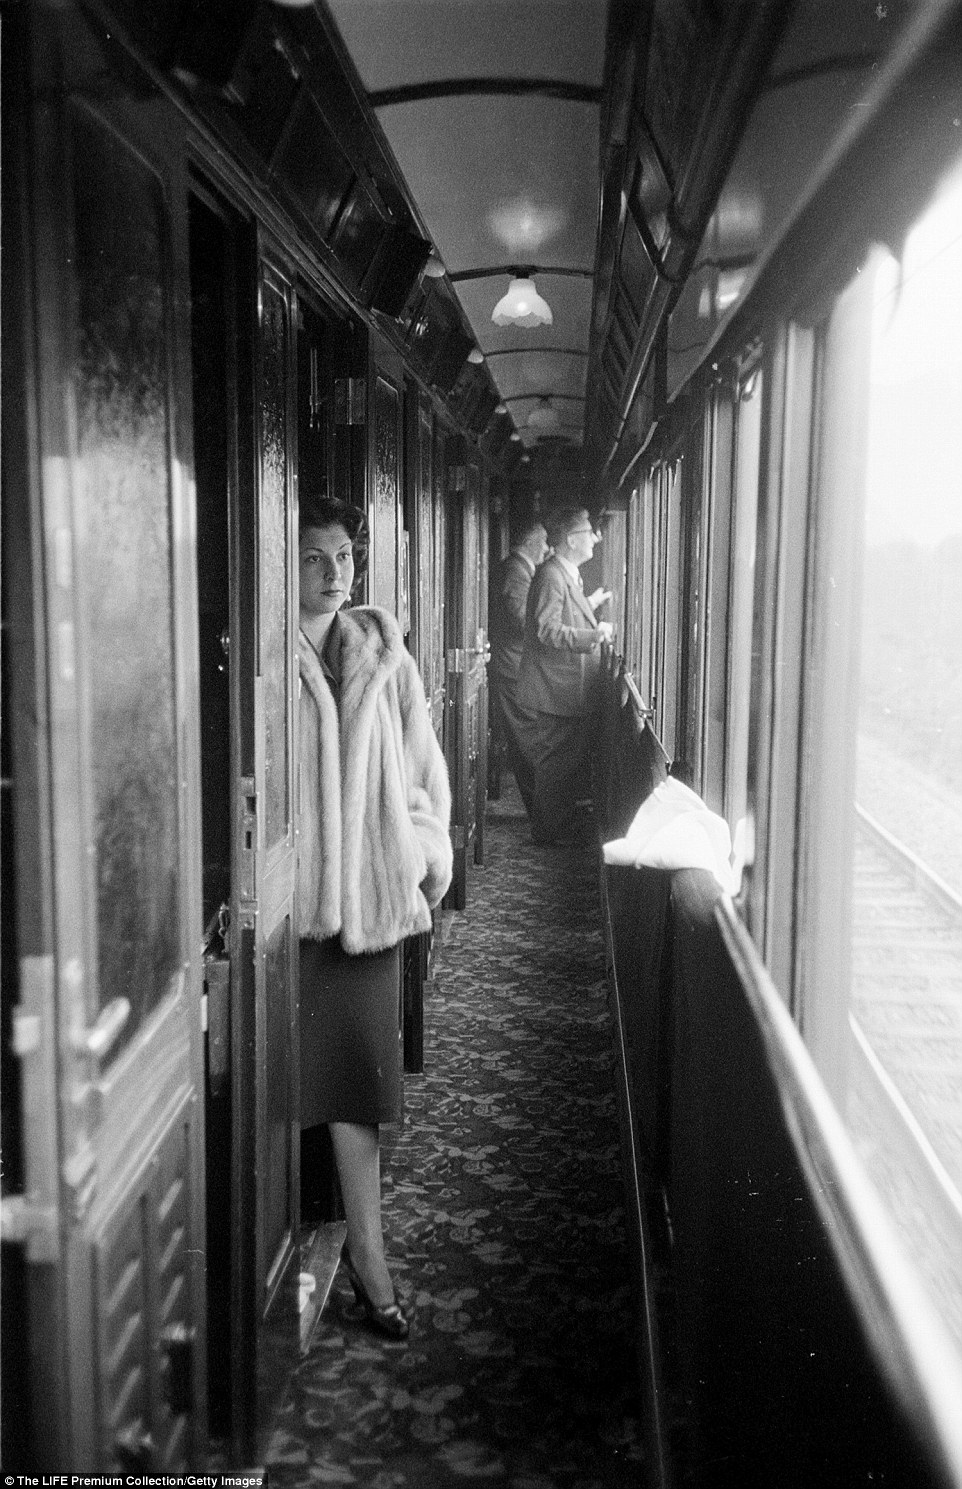 A woman passenger in a fur coat aboard the Simplon-Orient Express gazes wistfully out at the train tracks in this shot from 1950